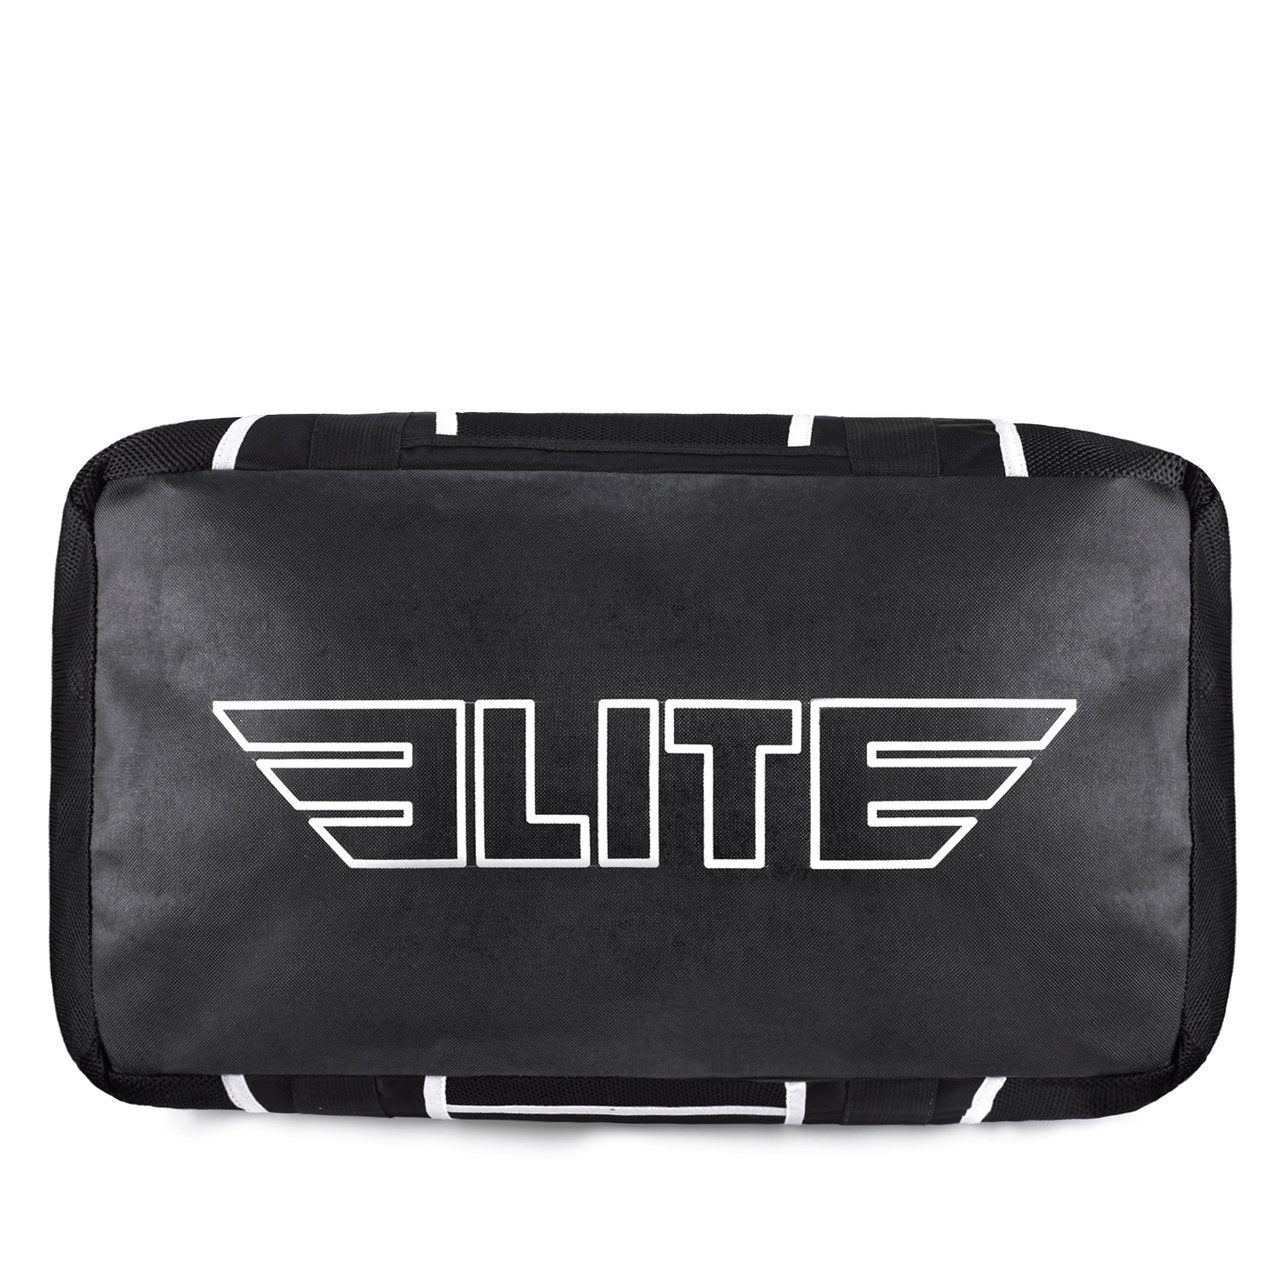 Load image into Gallery viewer, Elite Sports Warrior Series Black/White Strip Large Duffel Karate Gear Gym Bag